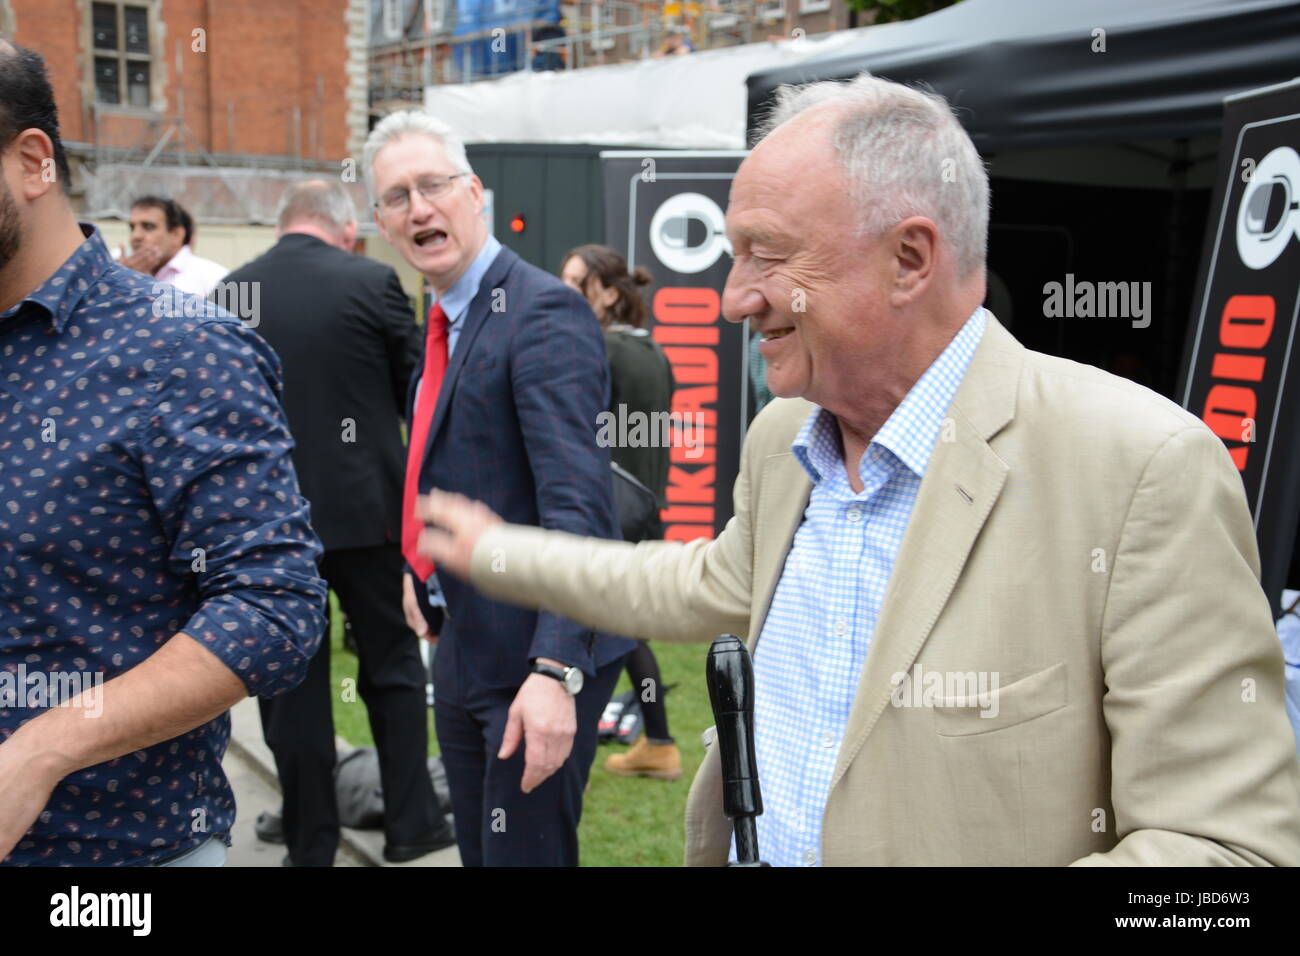 Lembit Opik and Ken Livingstone chatting on College Green after the 2017 General Election. - Stock Image